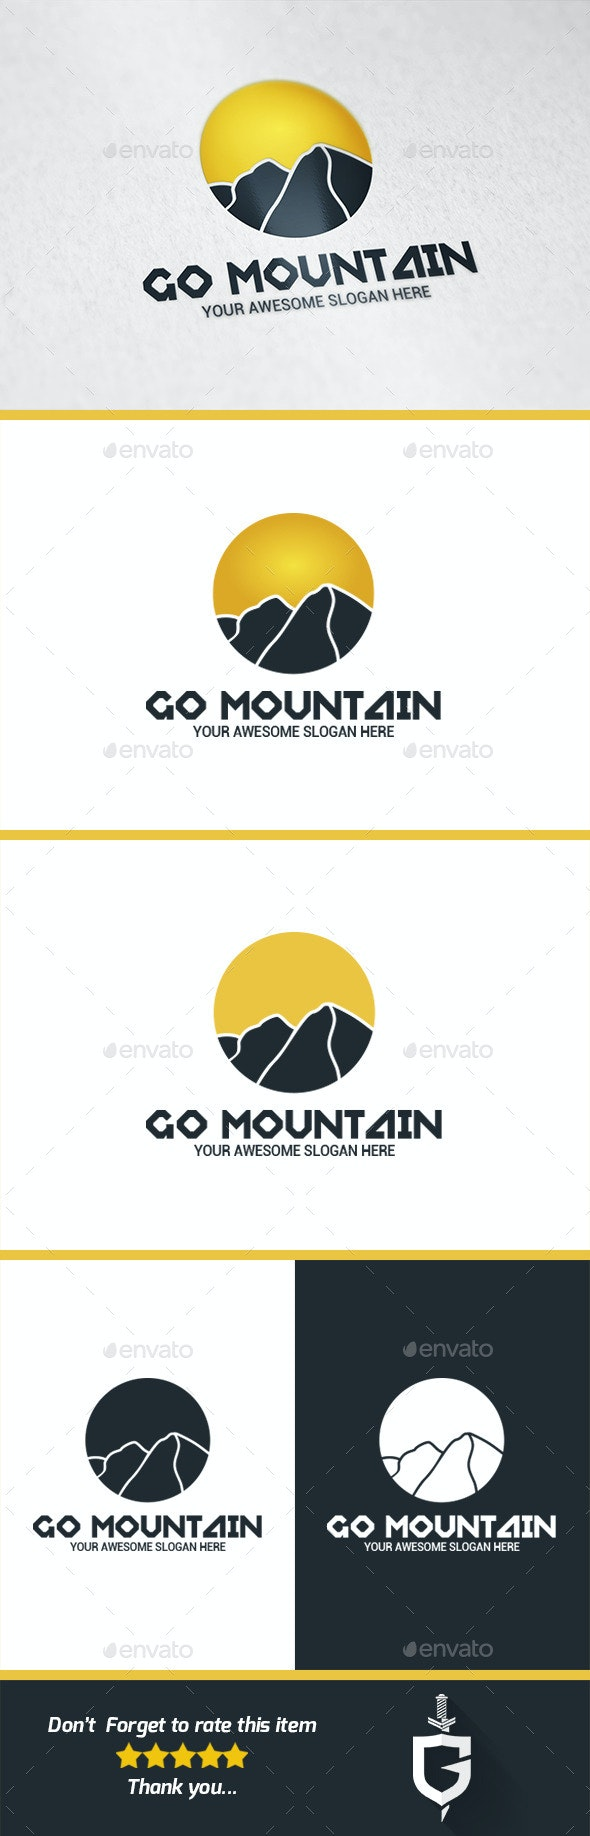 Go Mountain Logo Template - Nature Logo Templates